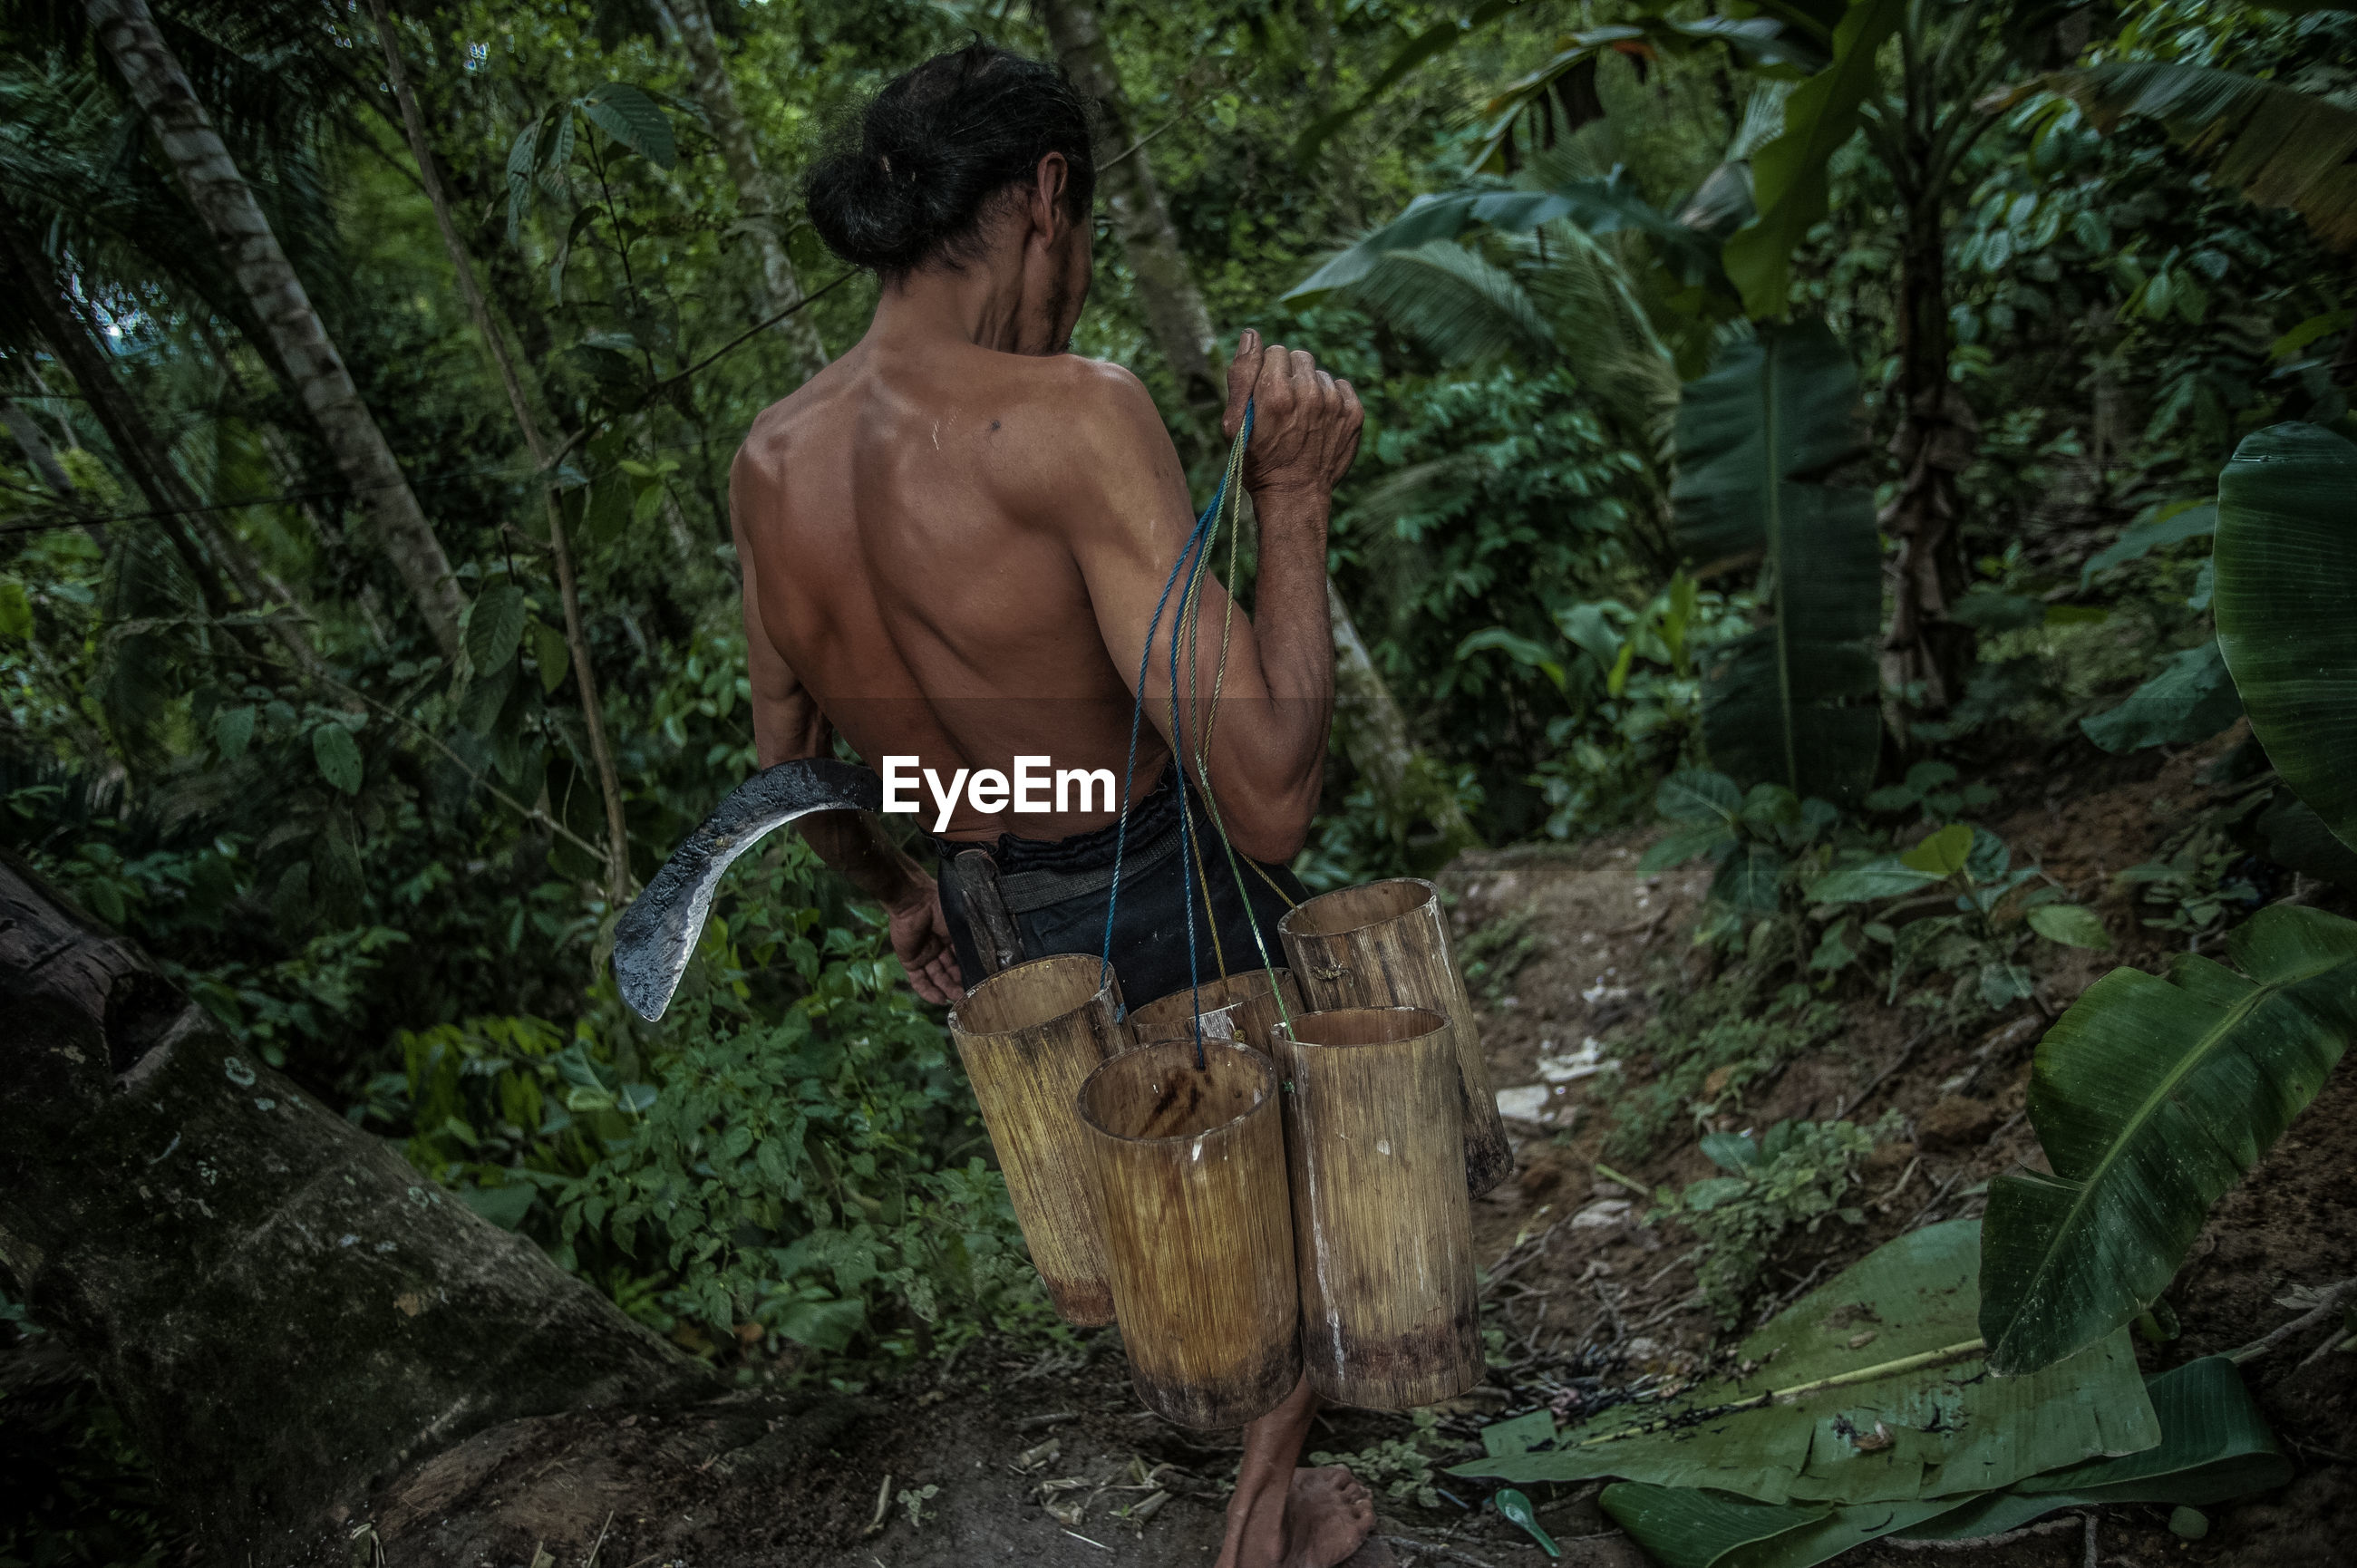 Rear view of shirtless man carrying wooden containers while walking amidst trees in forest